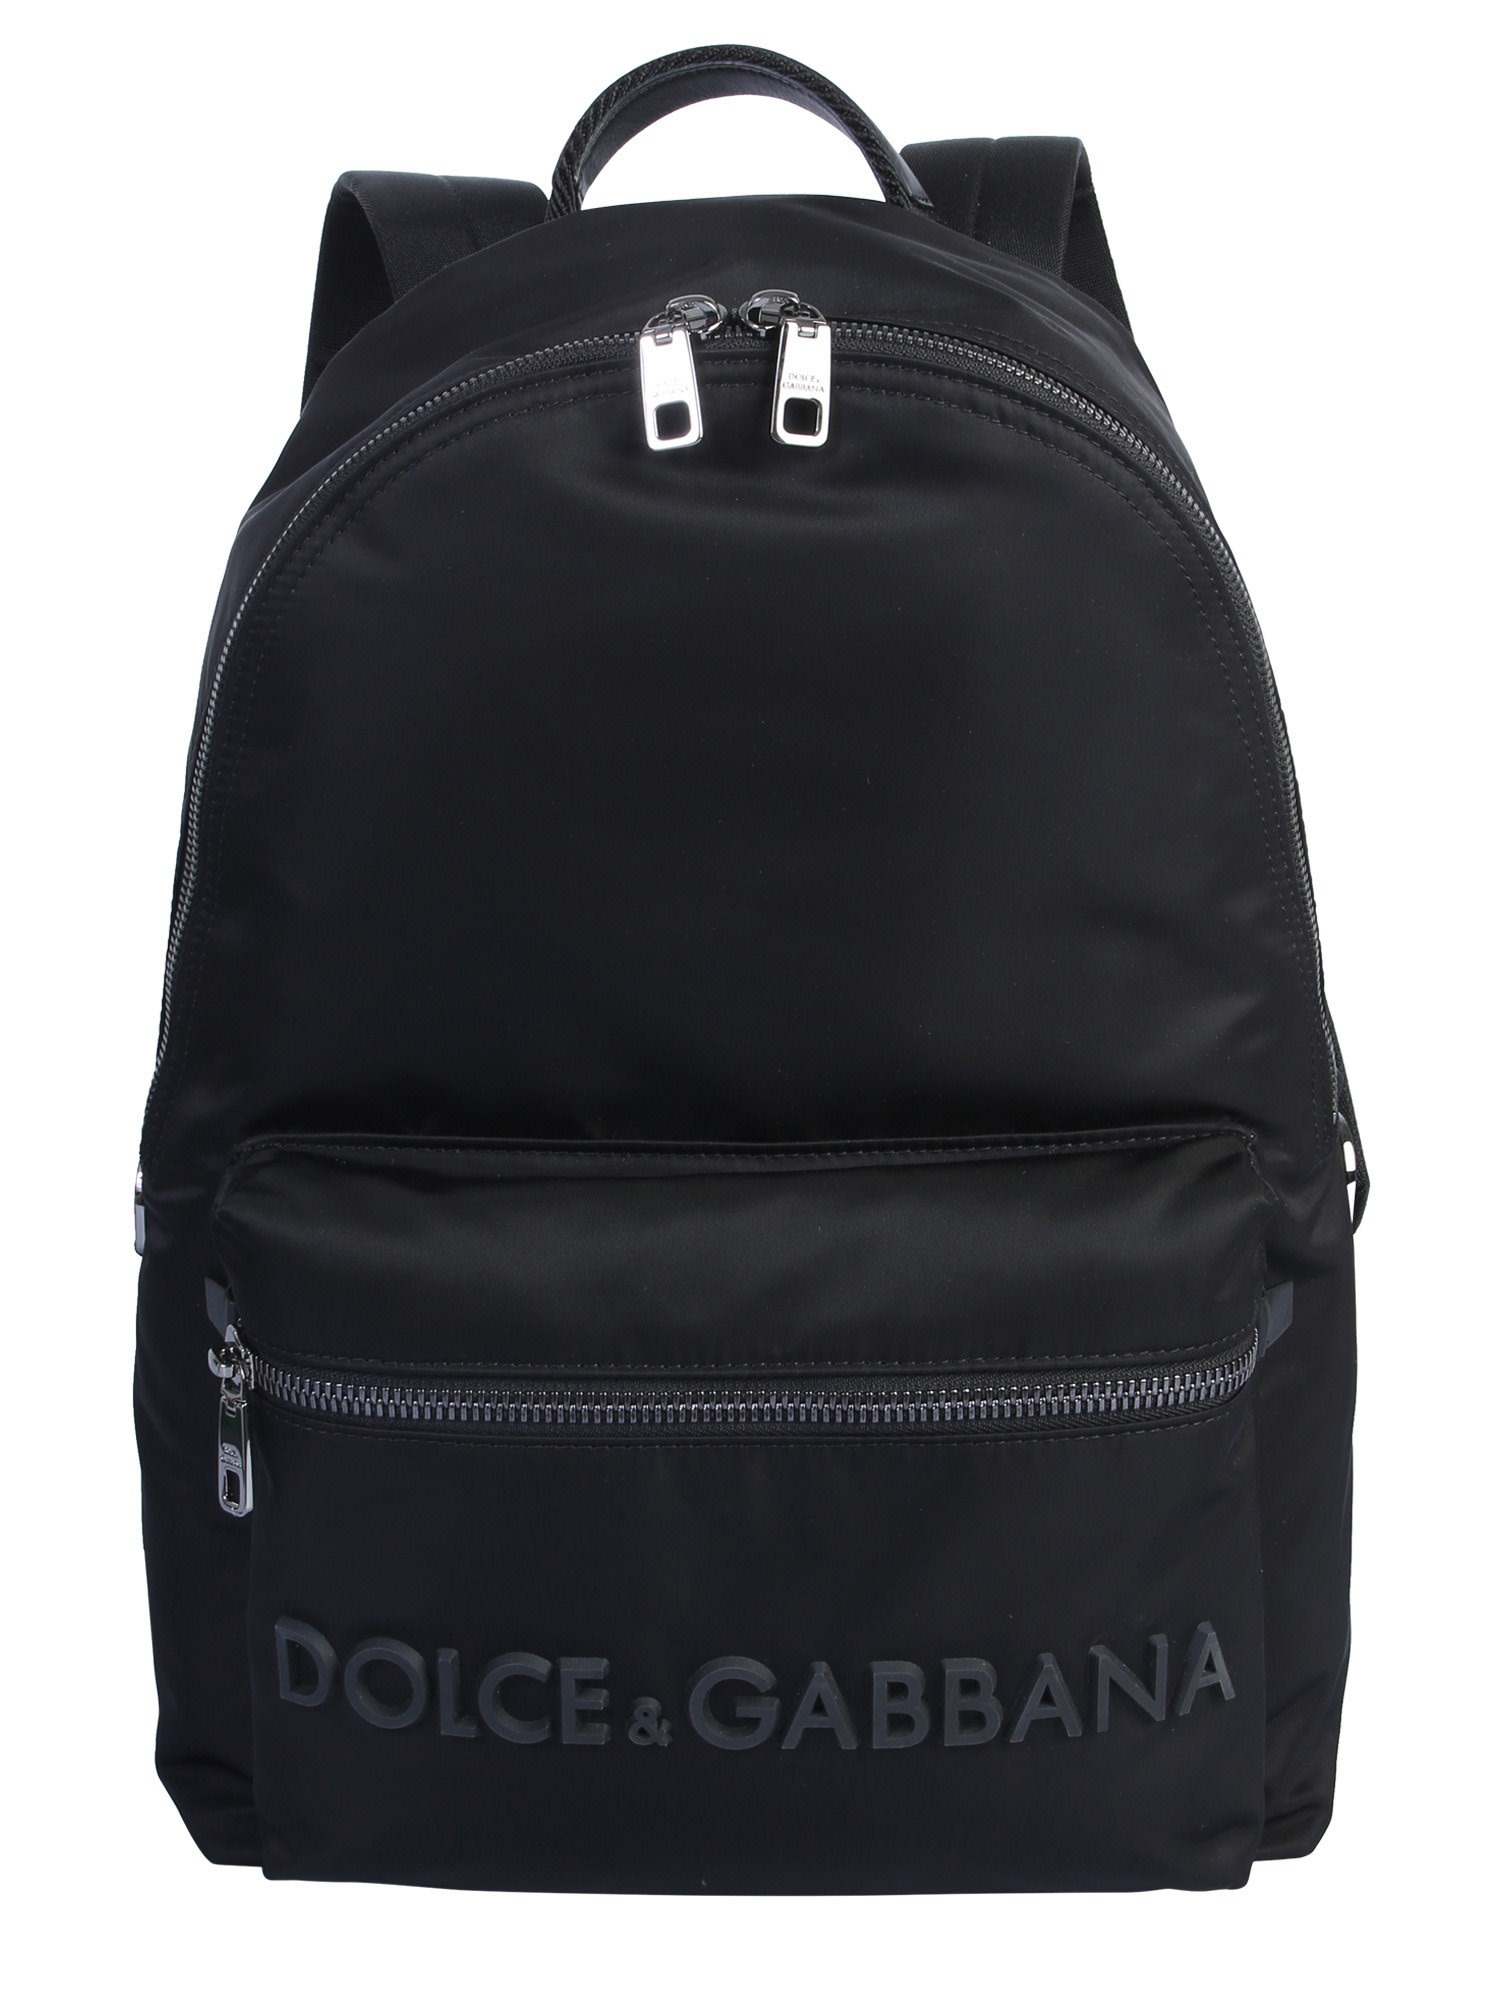 Dolce & Gabbana Backpack